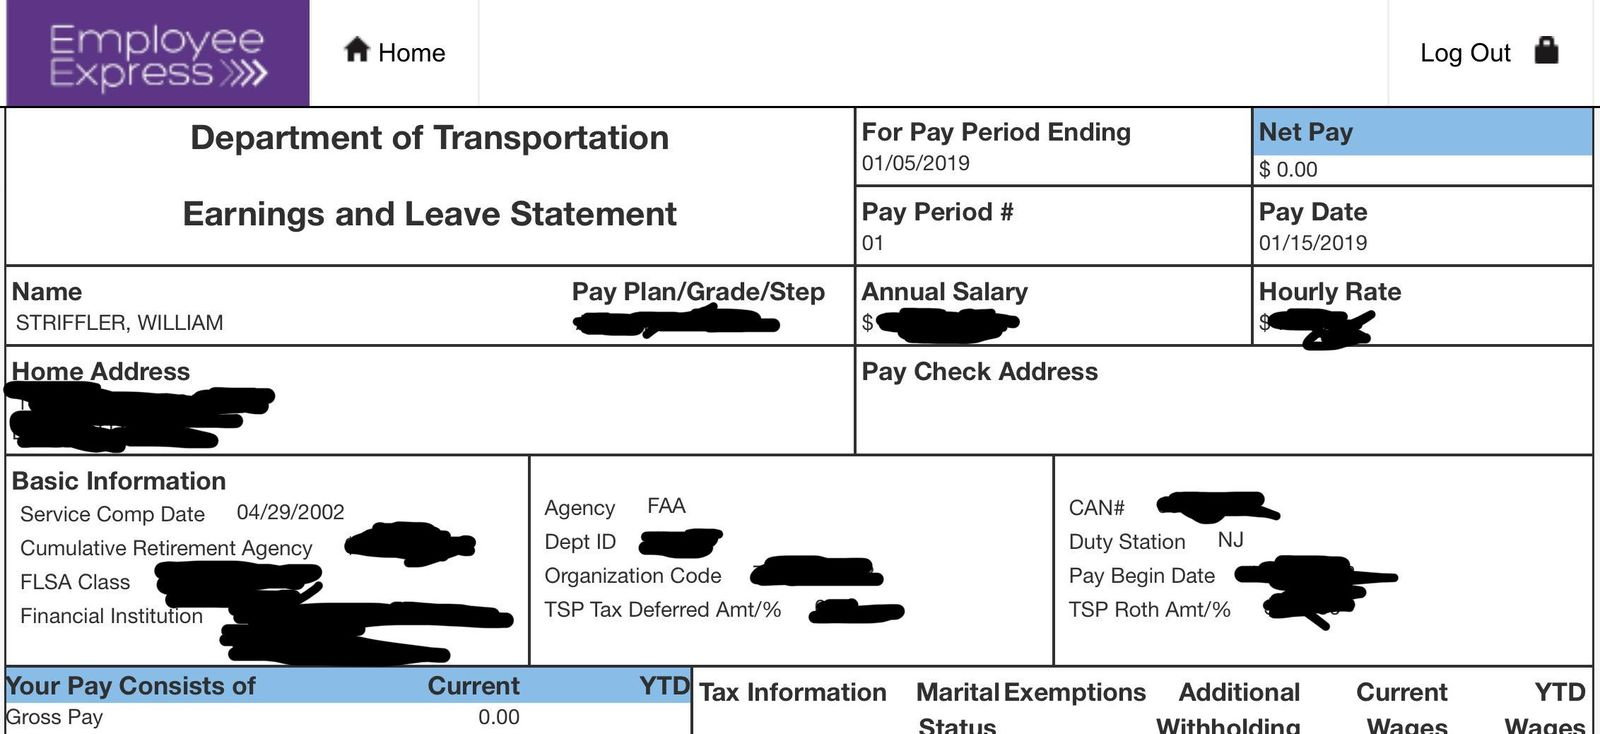 This portion of Bill Striffler's electronic pay stub provided by him to the Associated Press on Friday, Jan. 11, 2019, with portions blacked out by him, shows his recent pay to be $0.00 for his work as an air traffic controller at Newark Airport. (Bill Striffler via AP)